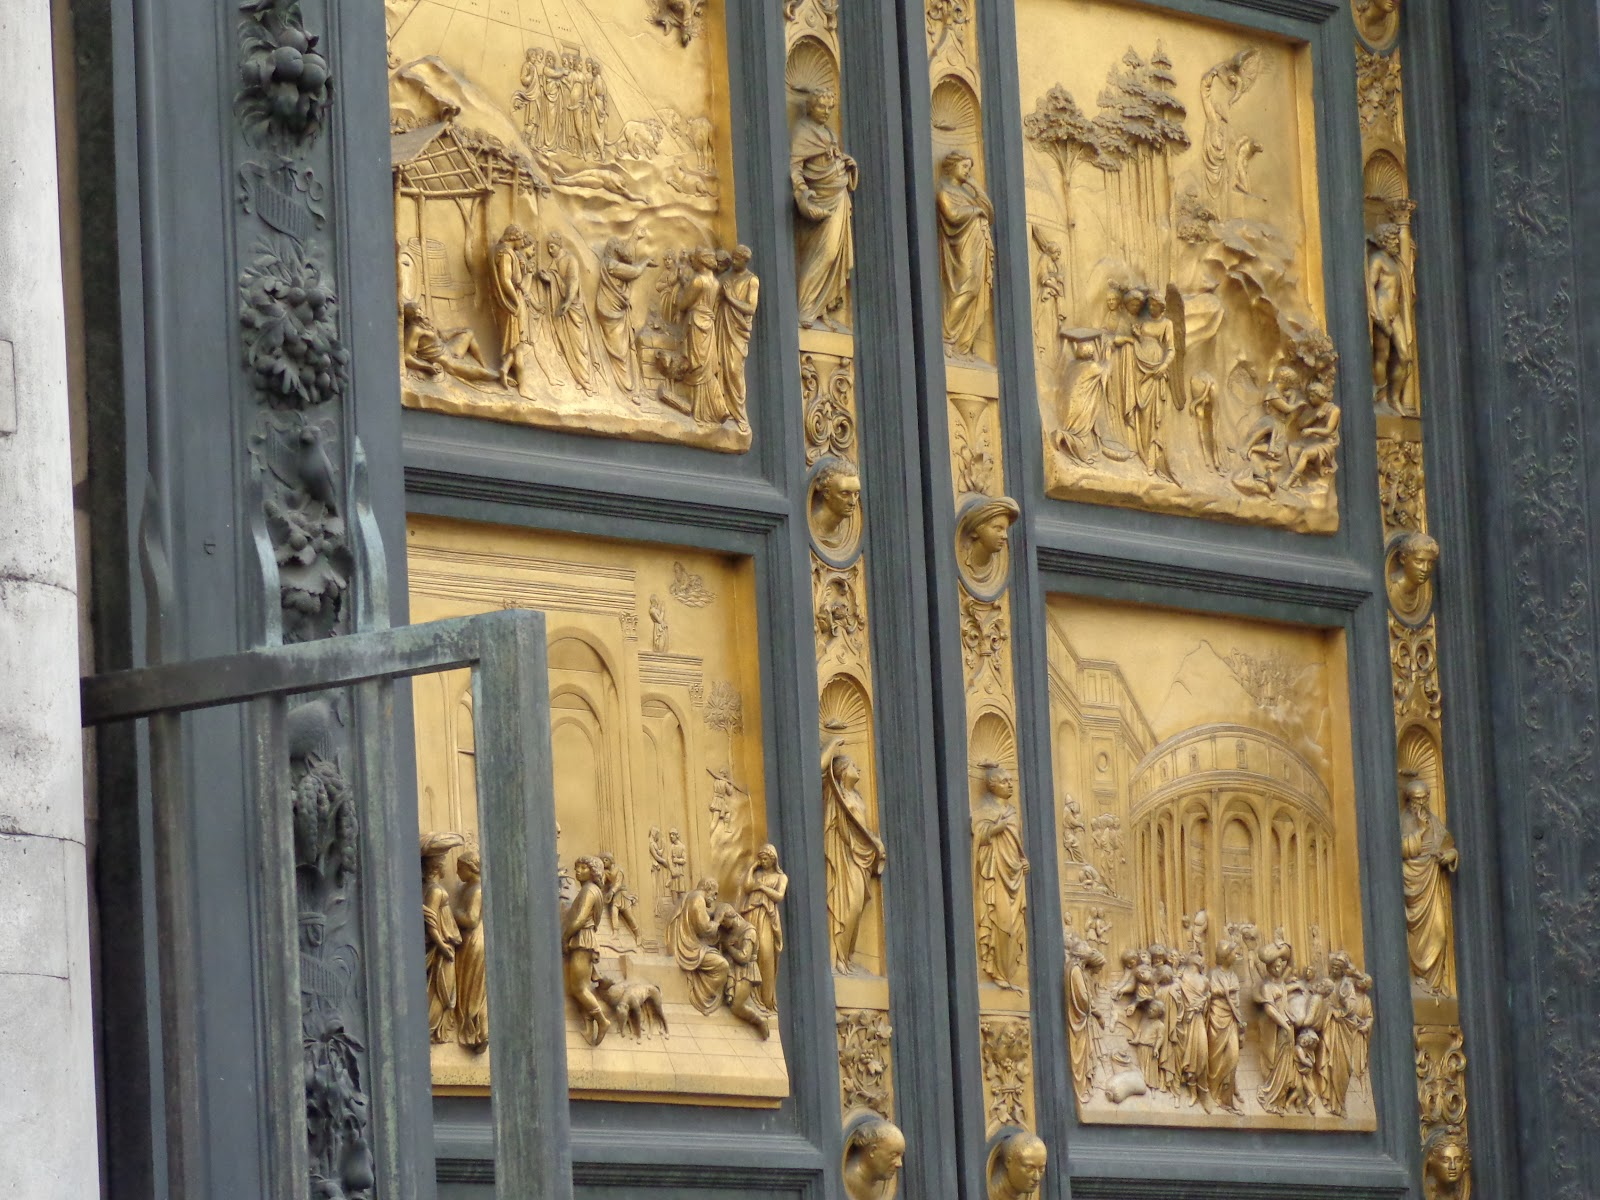 The Gates of Paradise East doors to the Florence Baptistery - Bottom ... & Highly Defined Reality - A Daily Photo Blog by Micah Goff: The ... Pezcame.Com